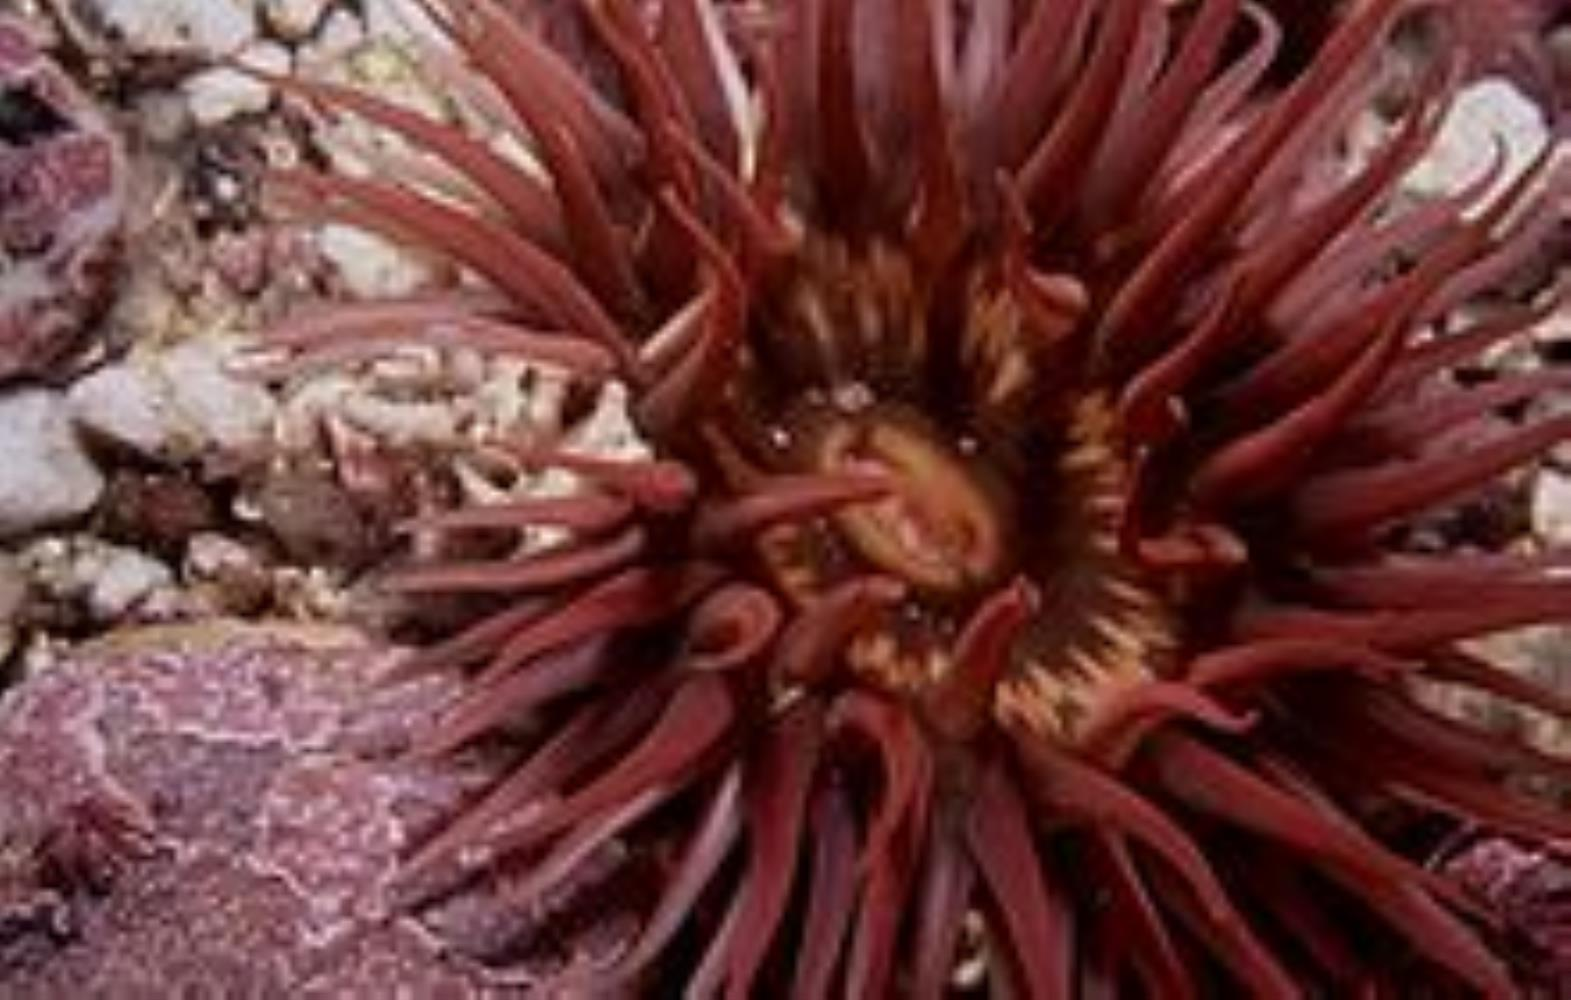 Long-tentacled/Crevice Anemone